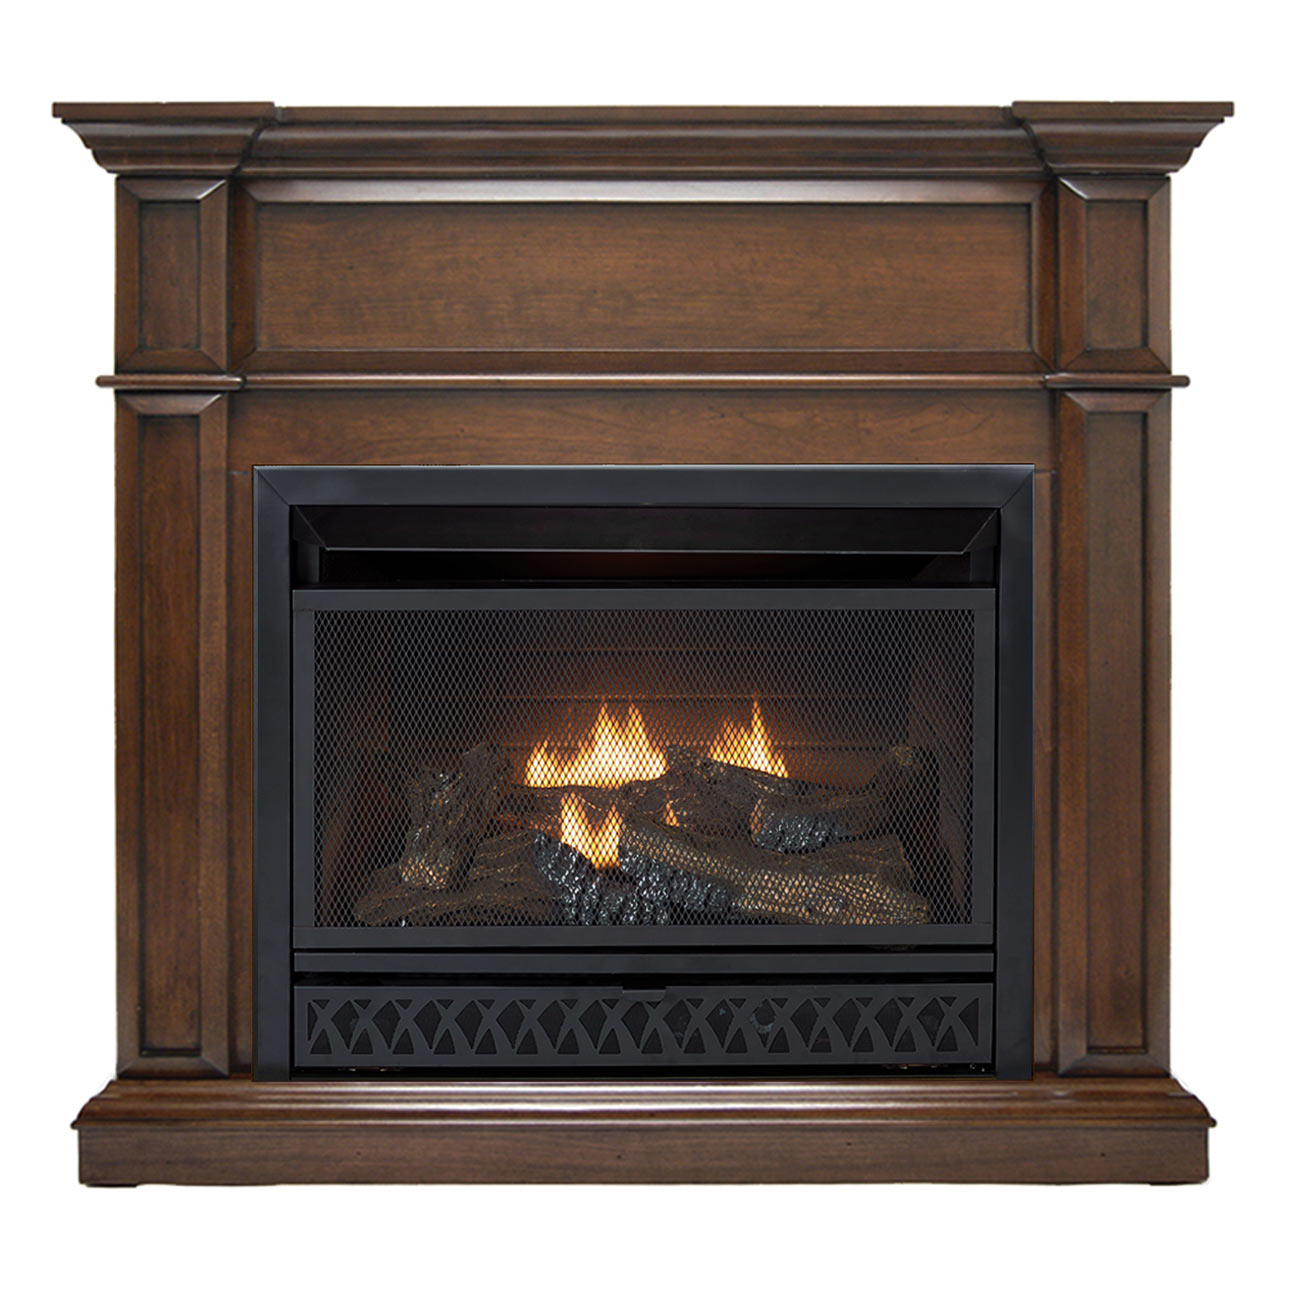 Forced Air Propane Heater >> HearthSense Ventless Fireplace System with Dual Fuel ...